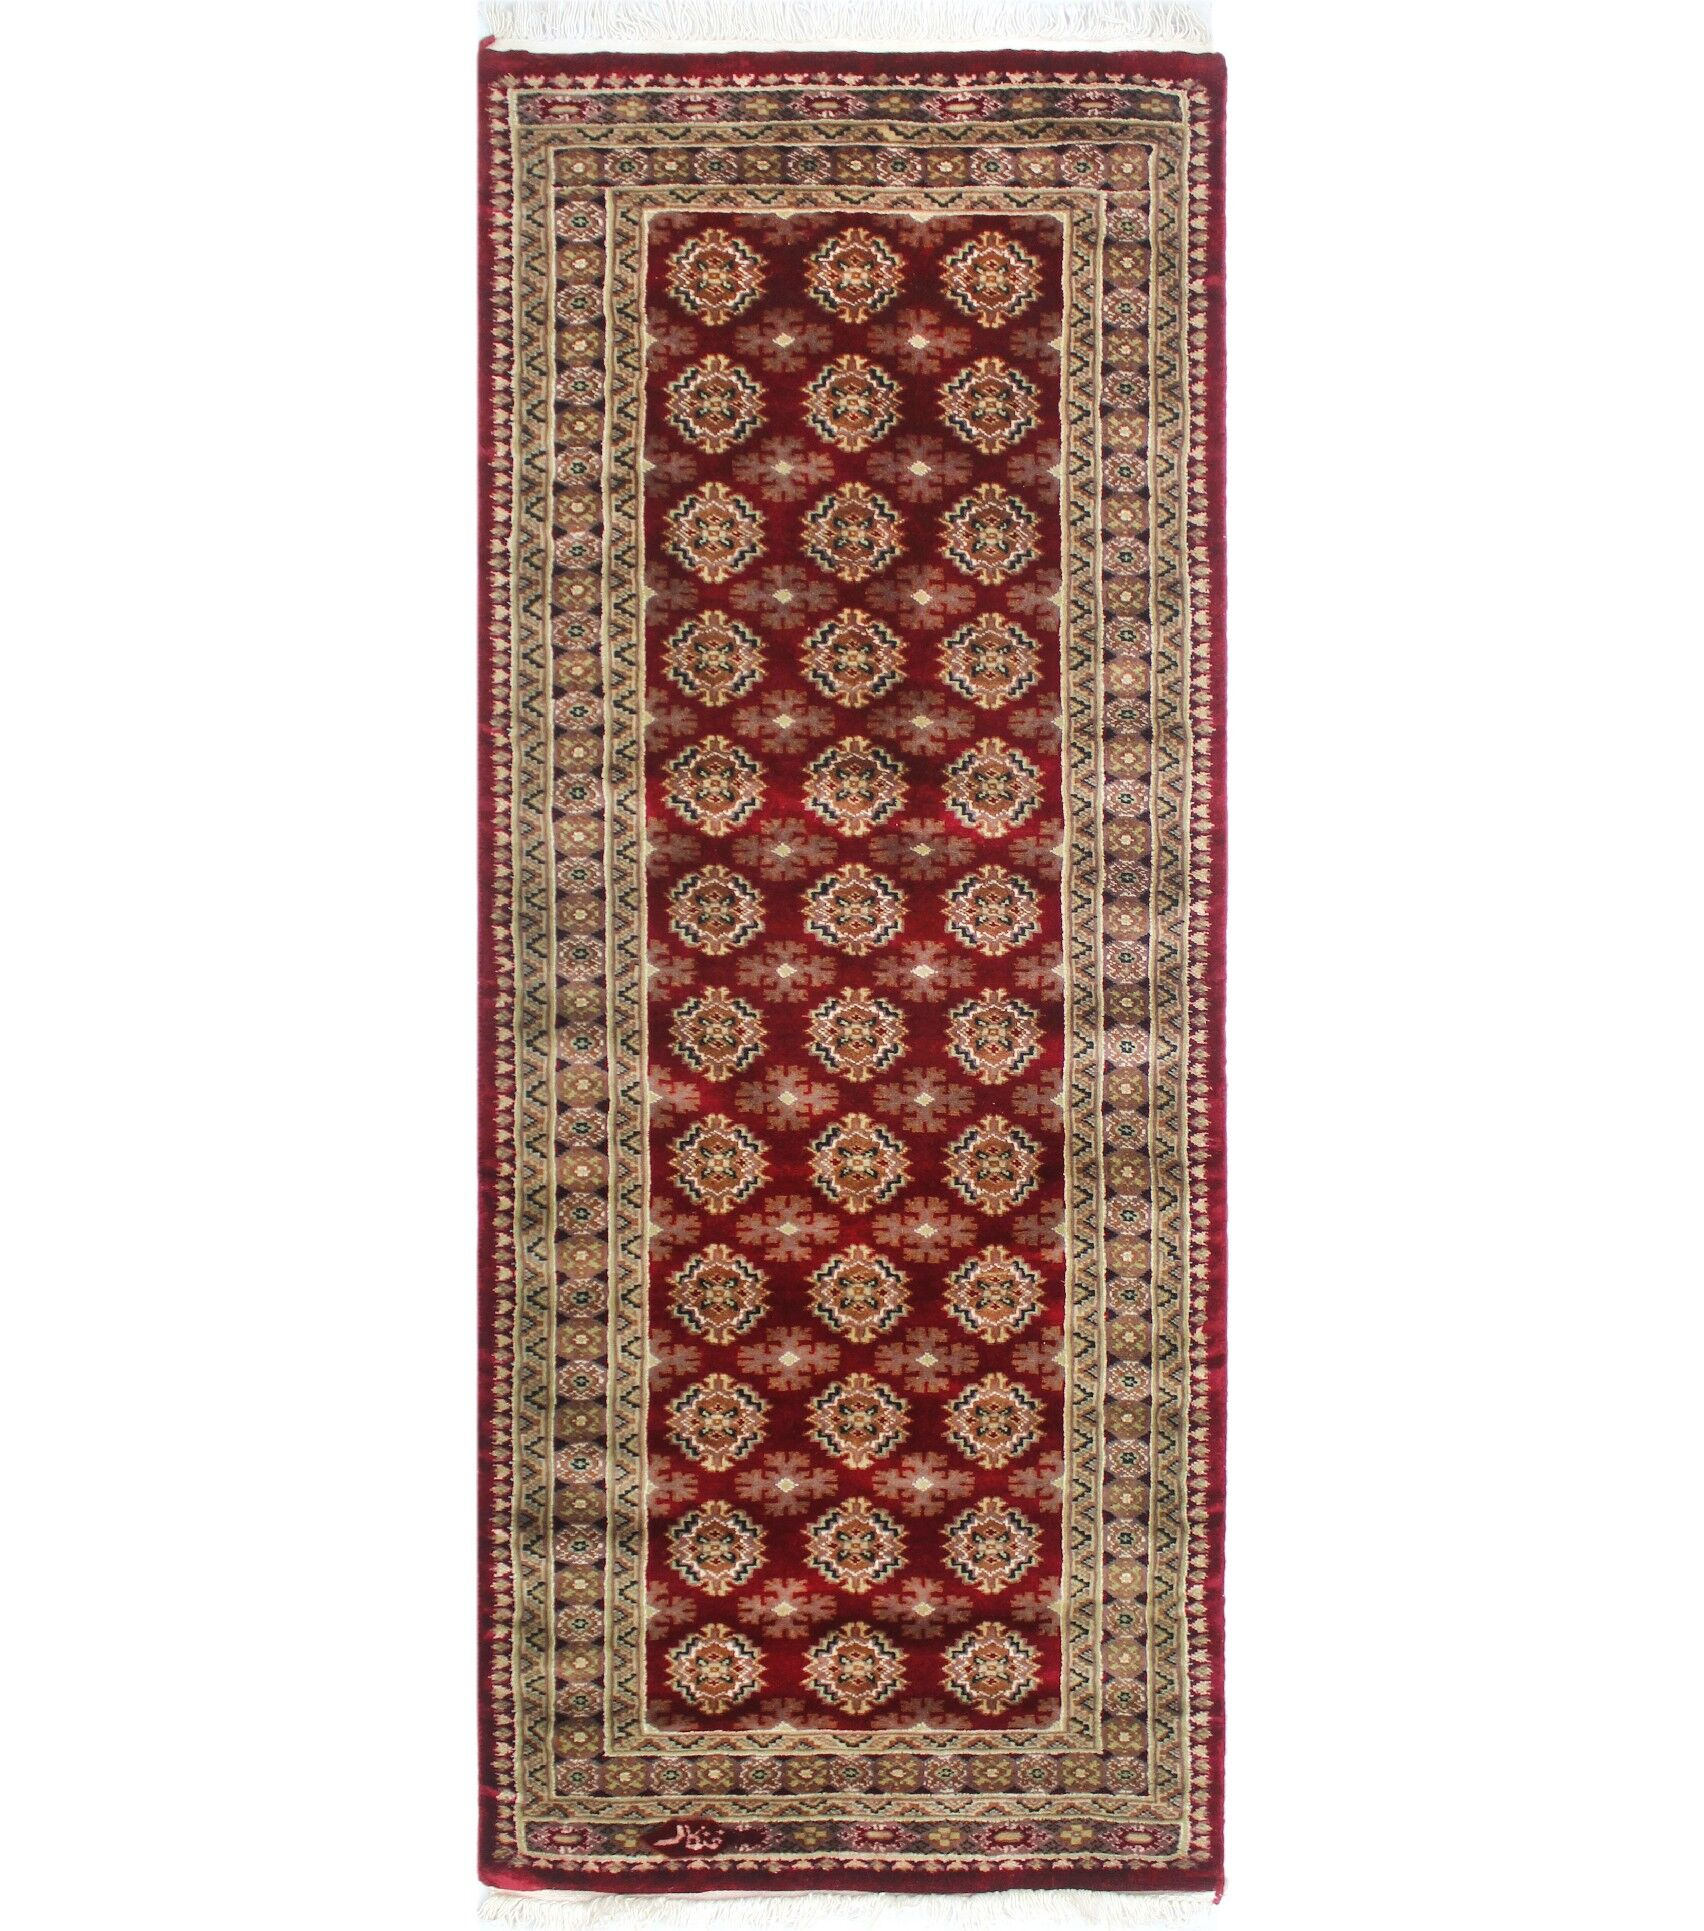 Urgeon Hand-Knotted Wool Red Area Rug